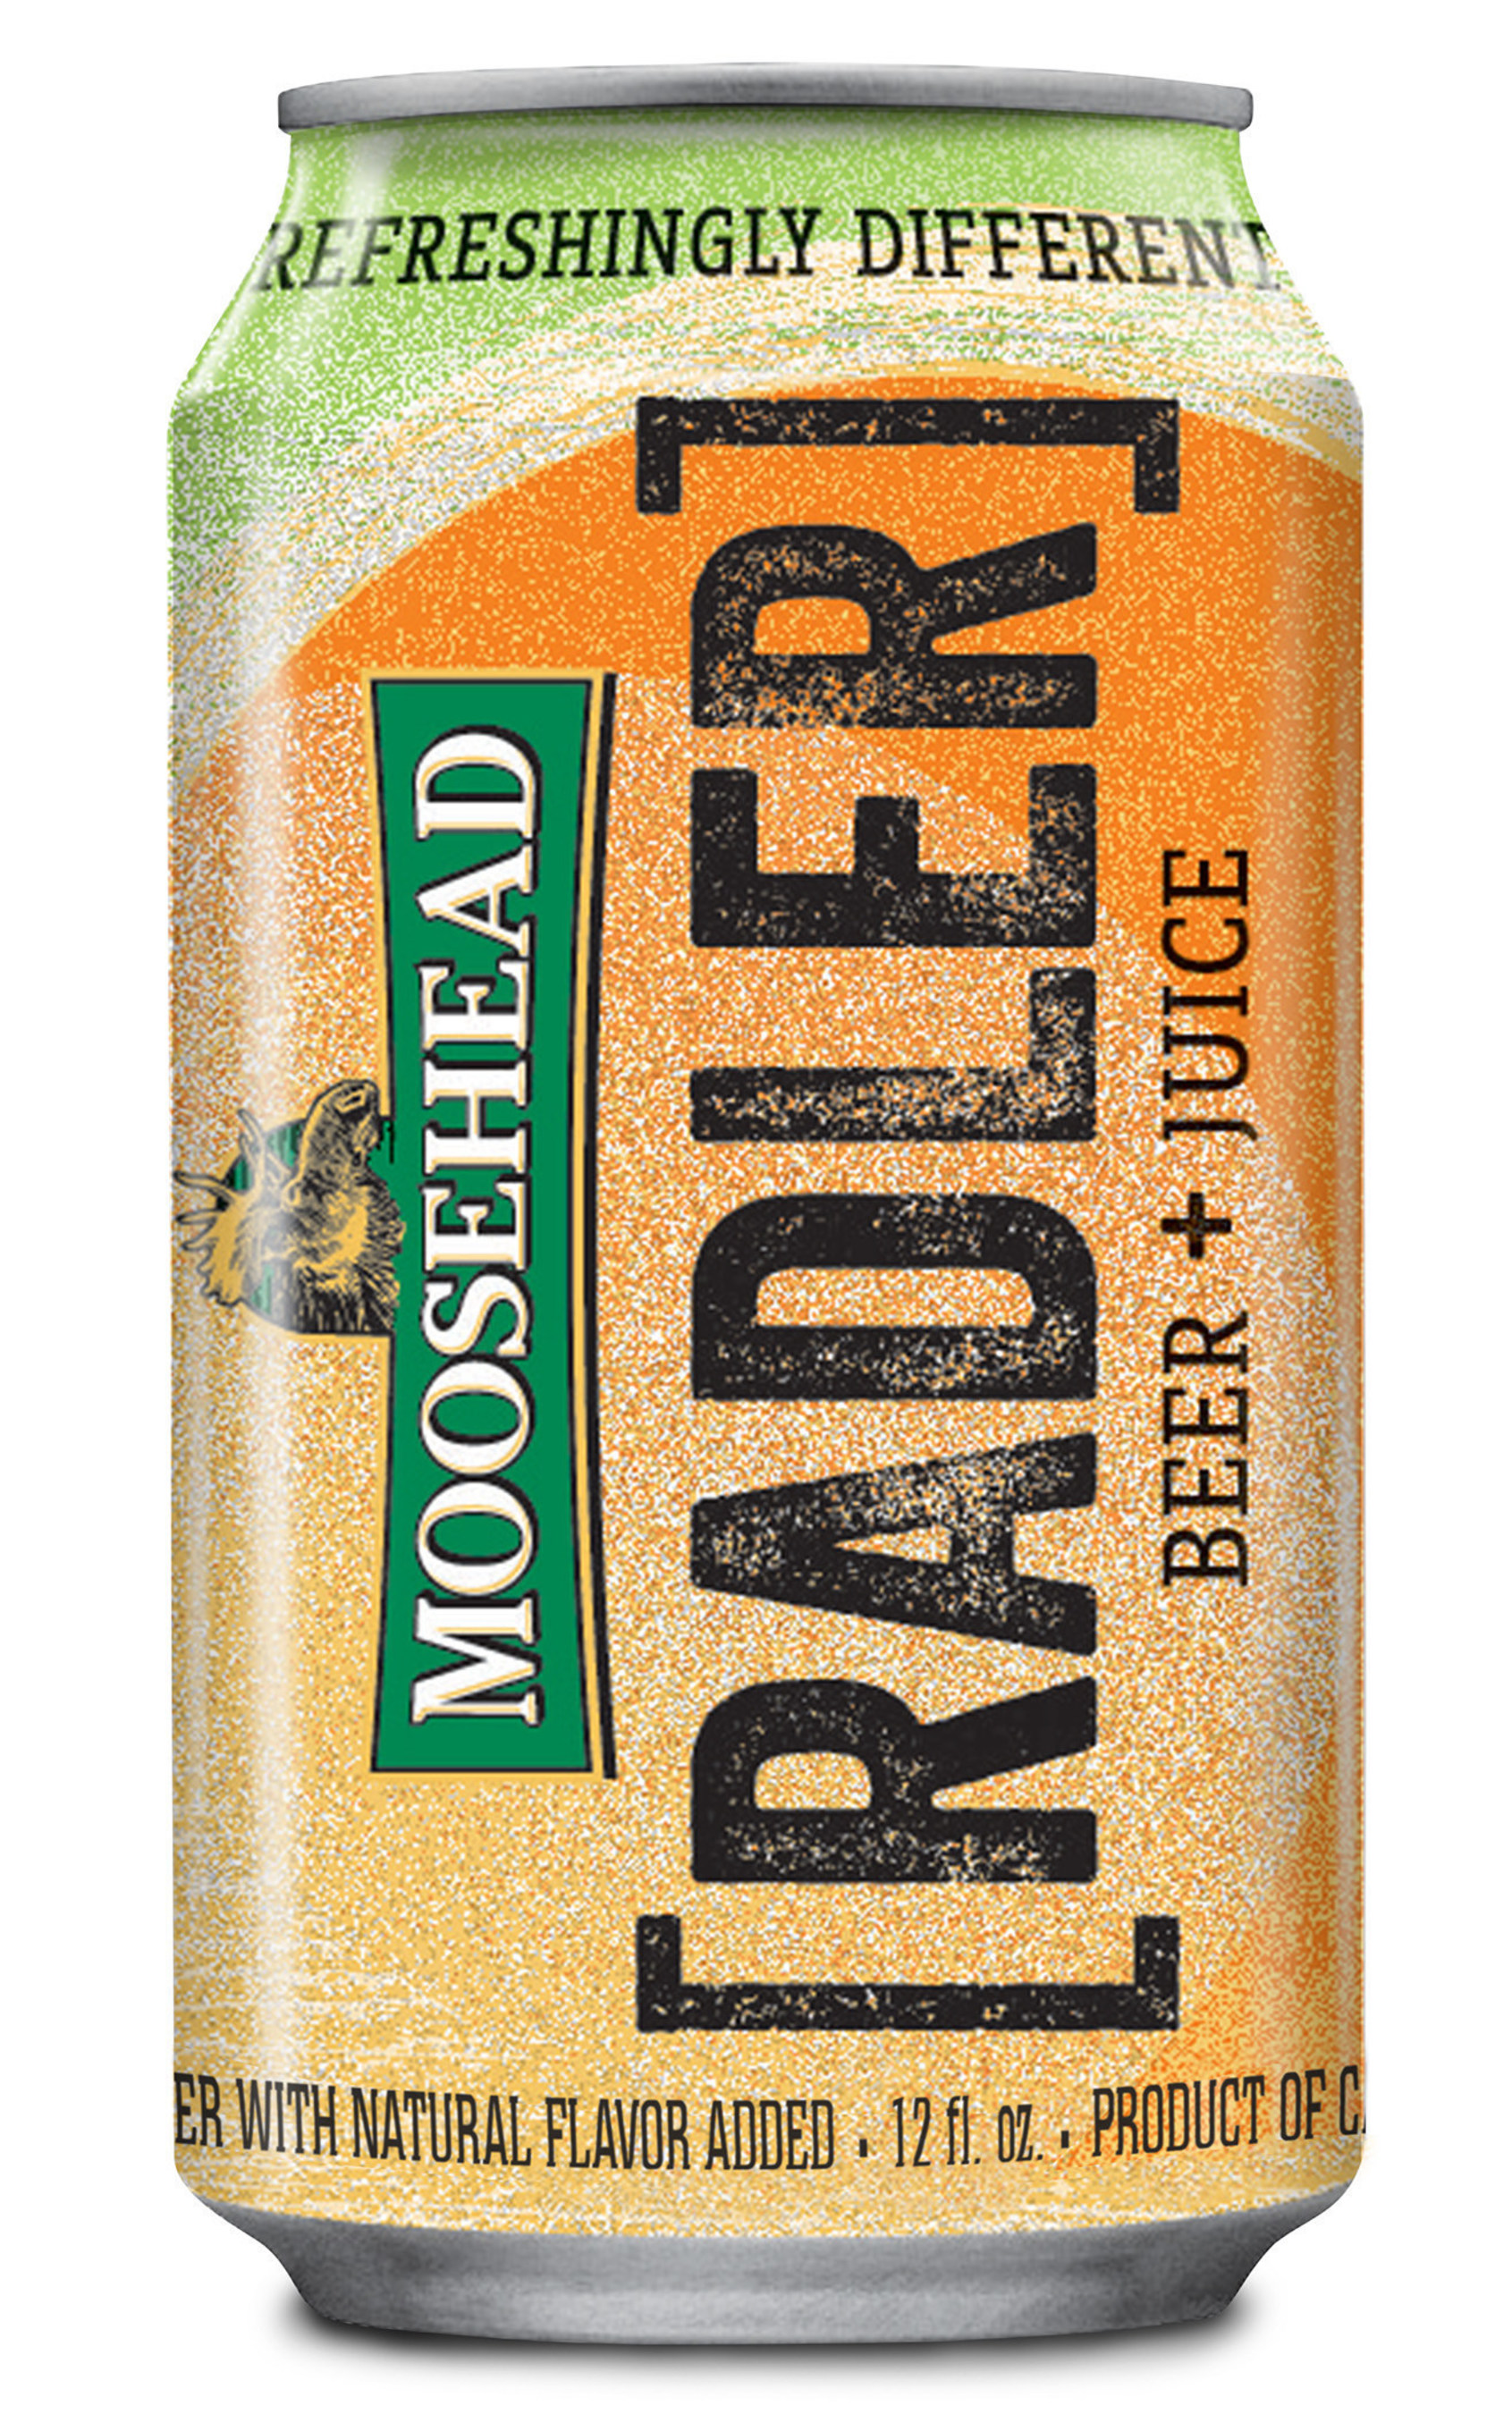 Moosehead Radler- a unique combination of beer with grapefruit, grape and lemon juices- launching in the US this Spring. Moosehead is a product of Moosehead Brewery, Canada's oldest independent brewery based in Saint John, New Brunswick.